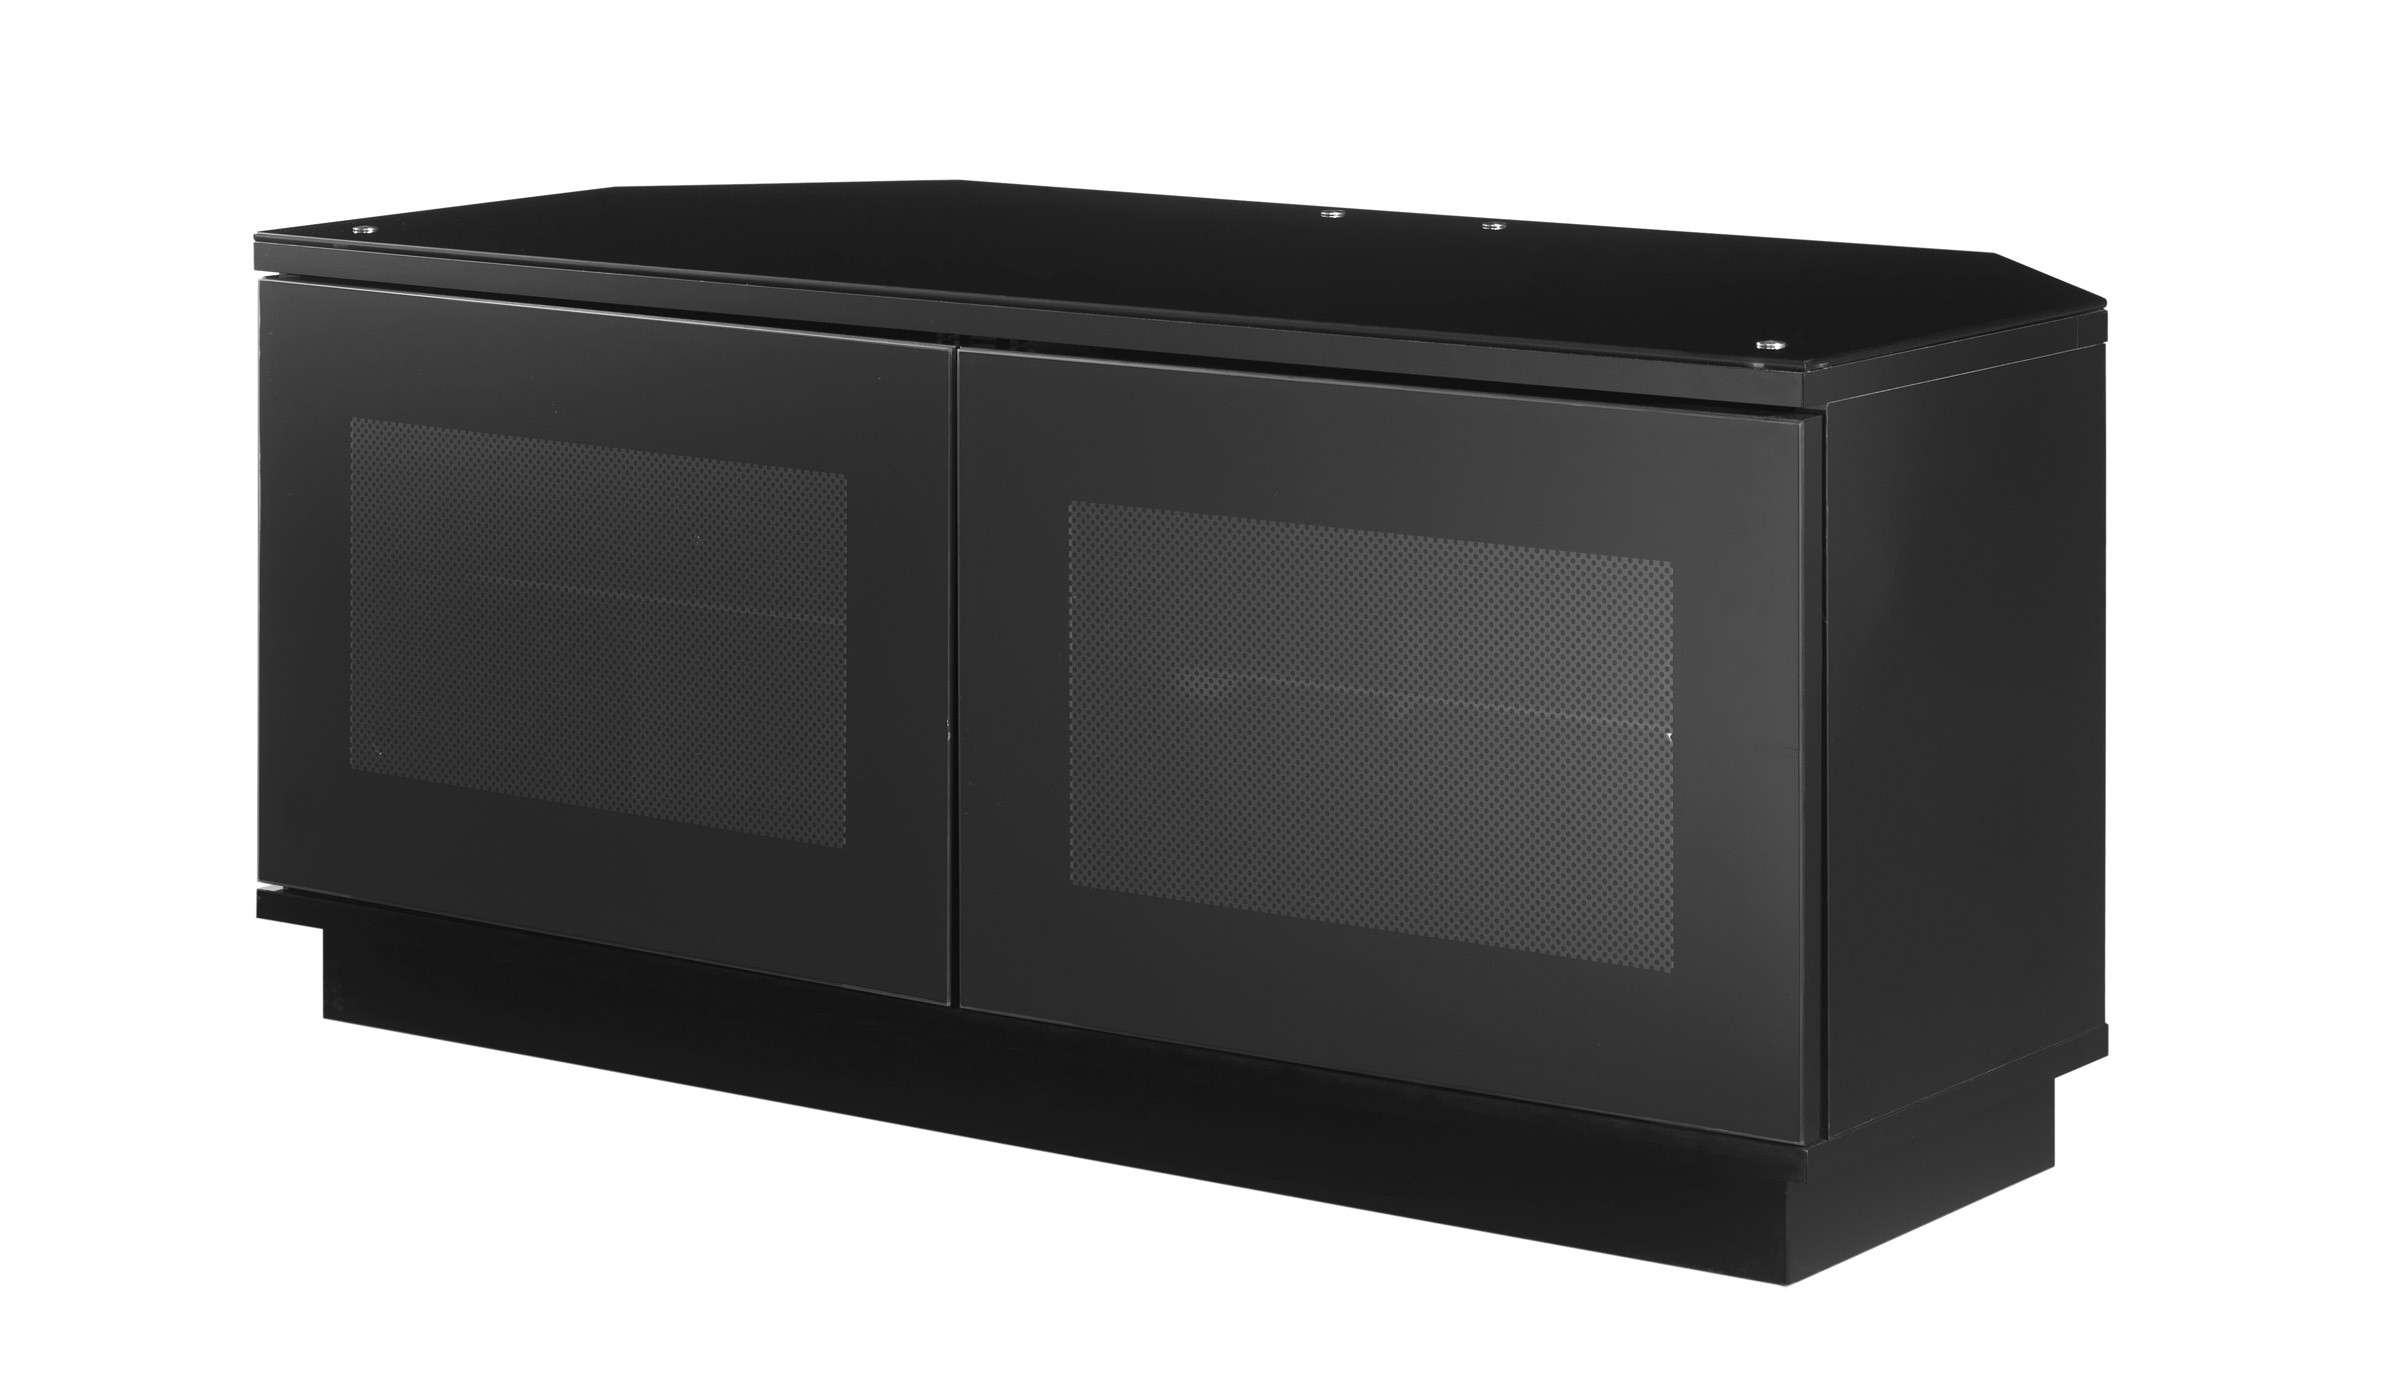 Small Black Tv Stand Cabinet With Door For Corner – Decofurnish Within Black Corner Tv Cabinets (View 12 of 20)